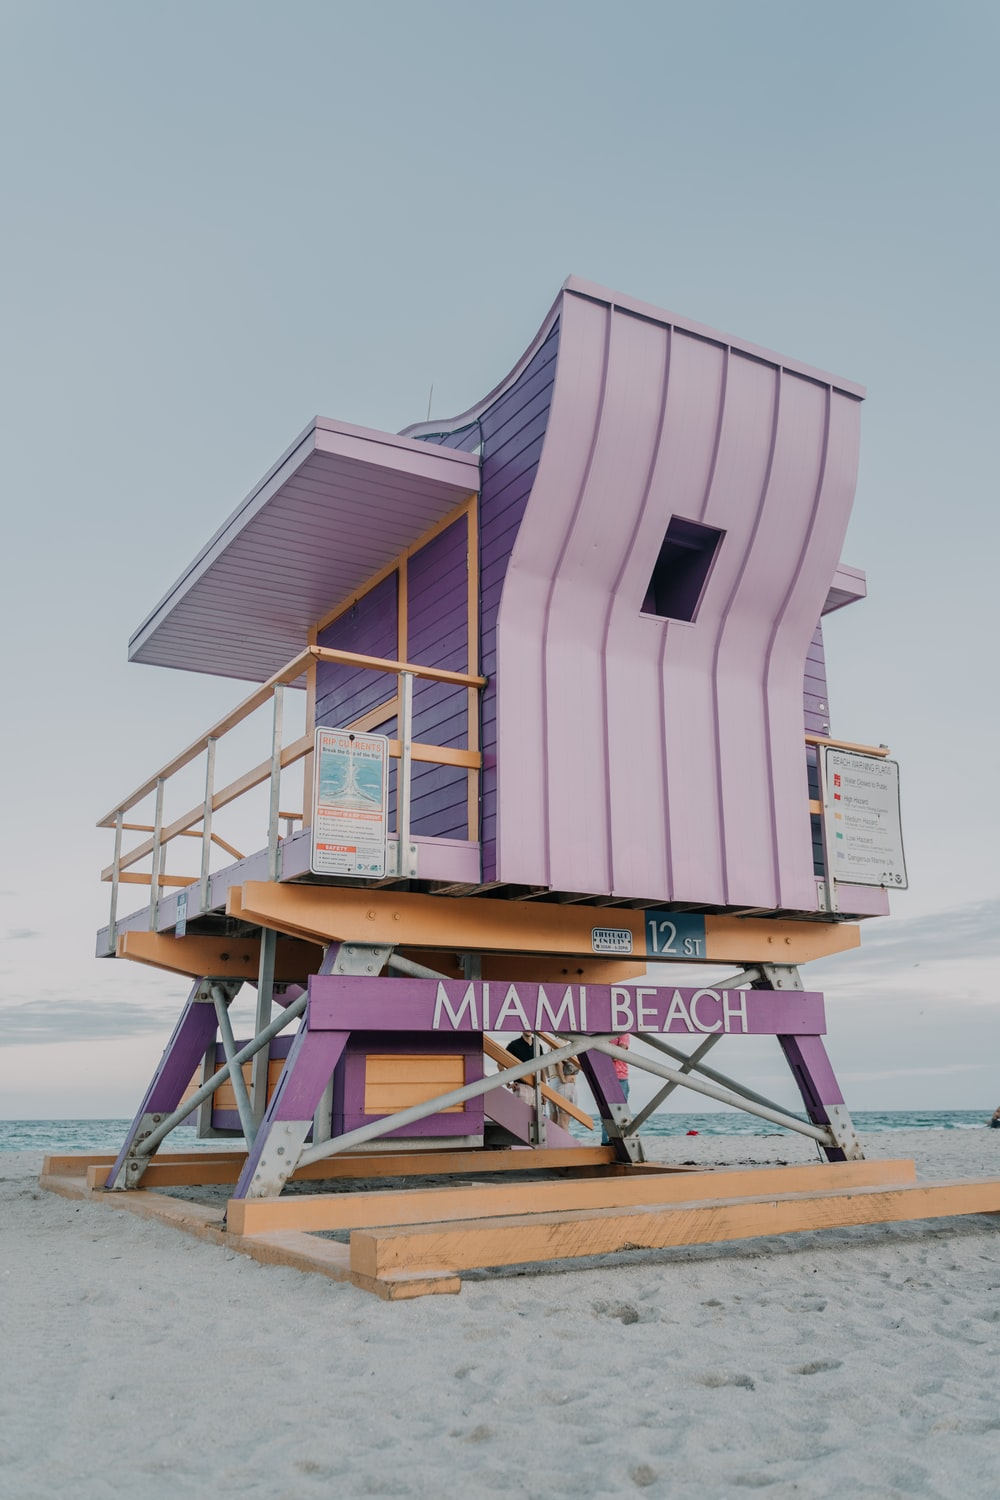 white and brown wooden lifeguard house on beach during daytime